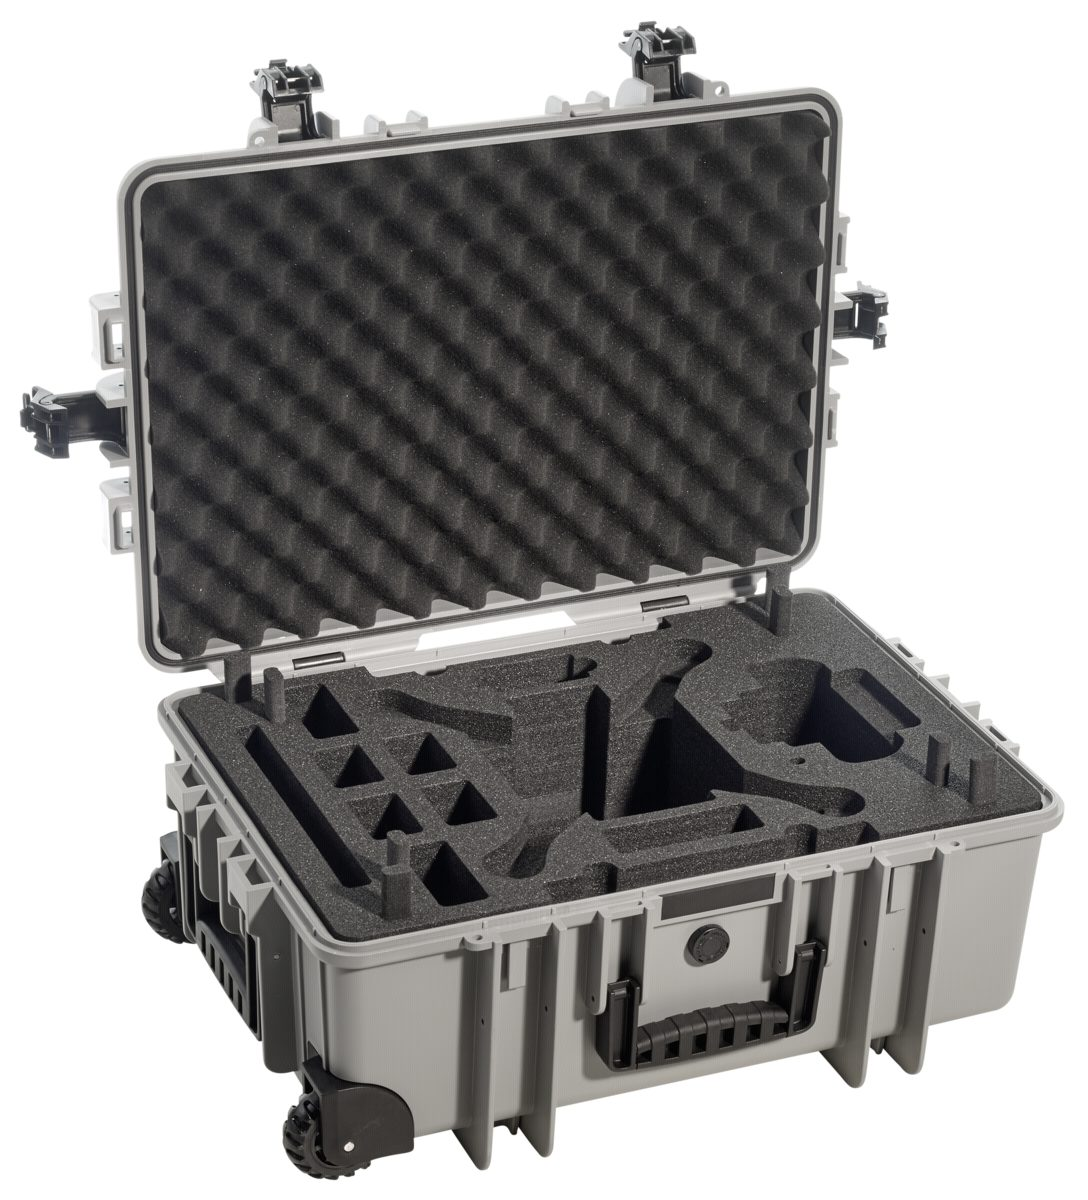 B&W International Drohnen »B&W Copter Case Type 6700/G mit DJI Phantom 3 «